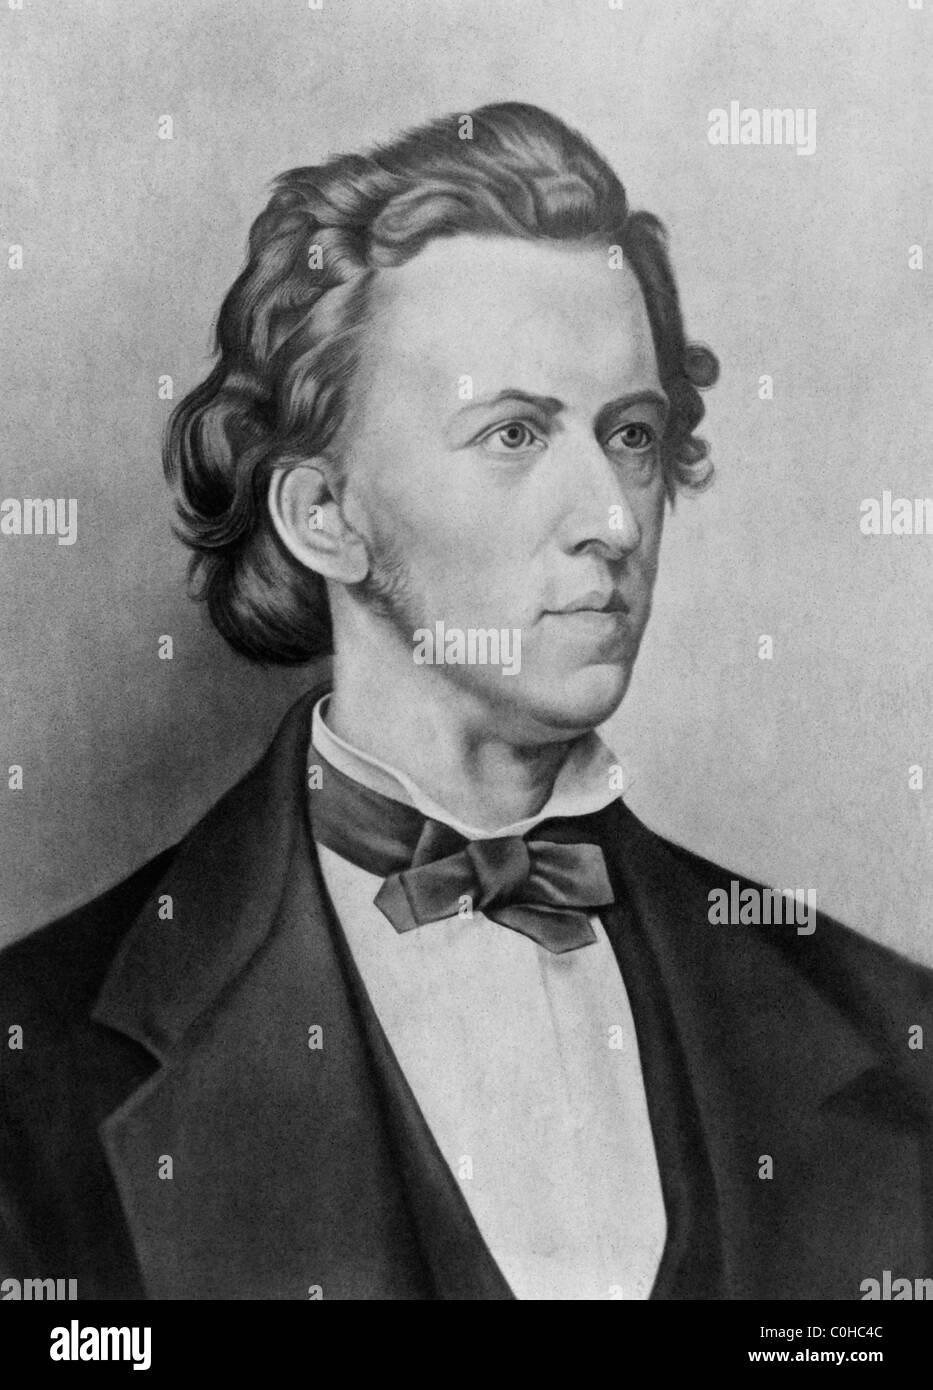 Vintage 19th century portrait of Polish composer and pianist Frederic Chopin (1810 - 1849). - Stock Image